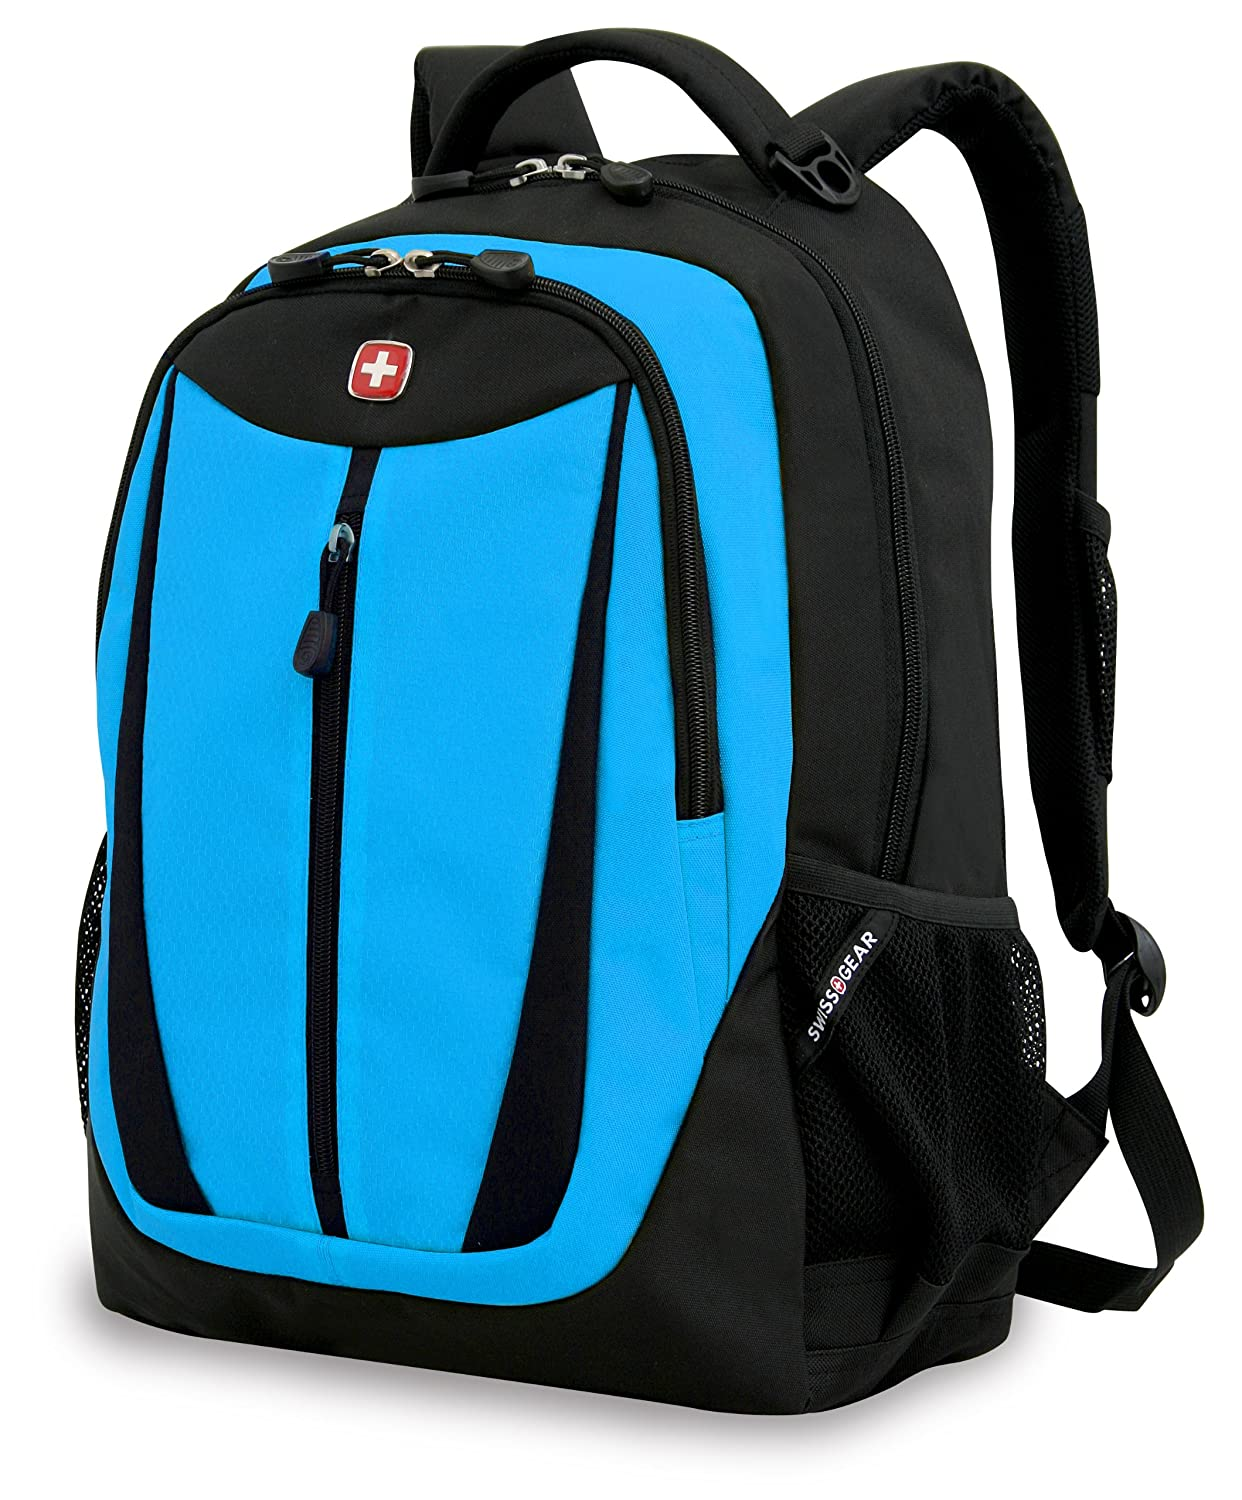 Amazon.com: Swiss Gear SA3077 Black with Blue Lightweight Laptop ...